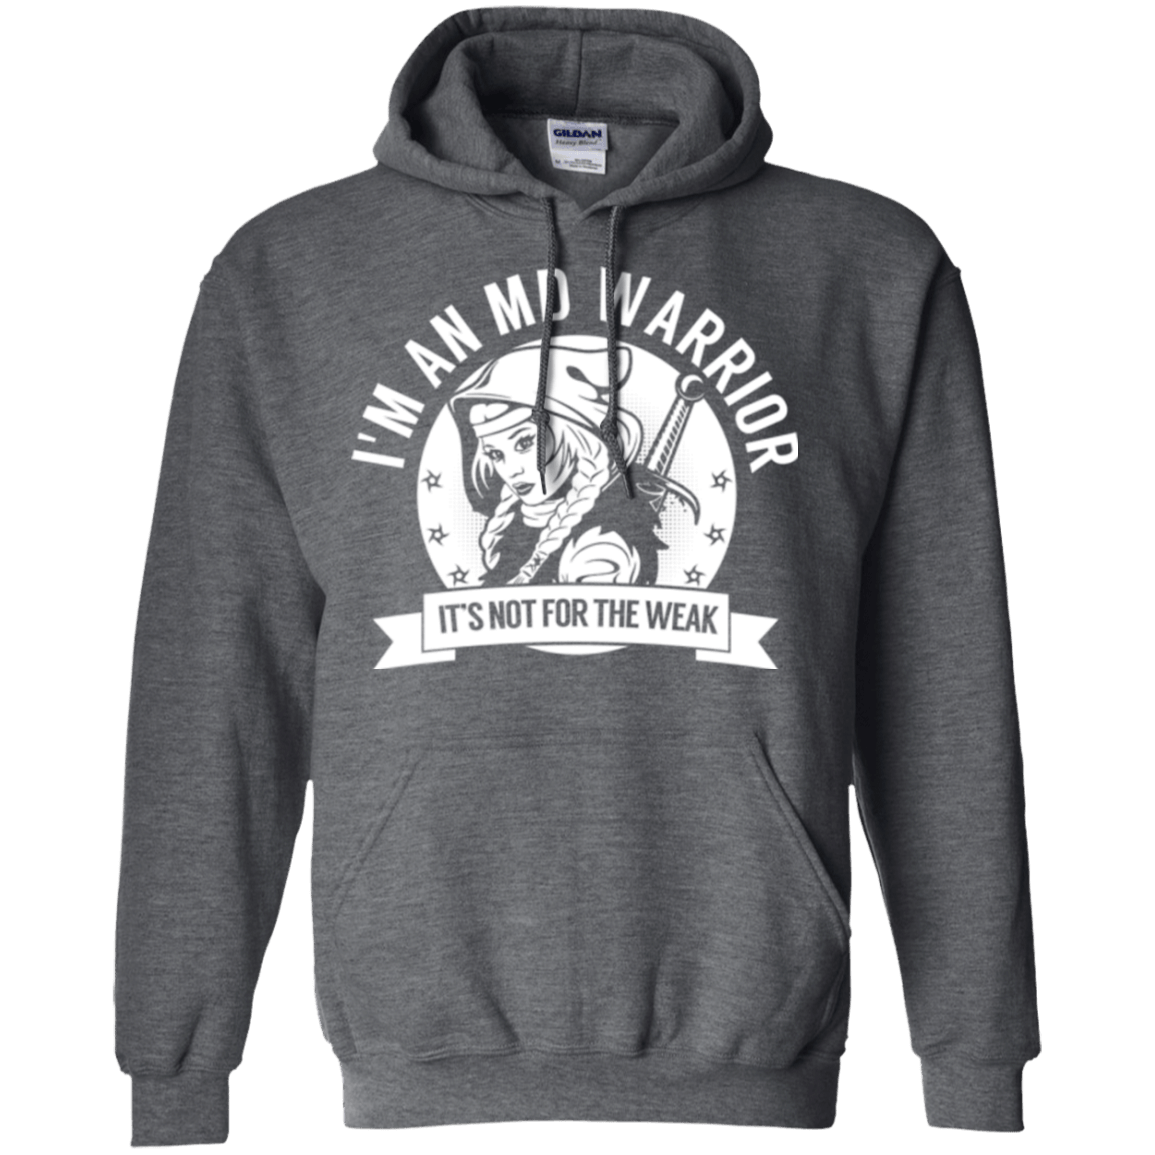 Muscular Dystrophy - MD Warrior Hooded Pullover Hoodie 8 oz. - The Unchargeables